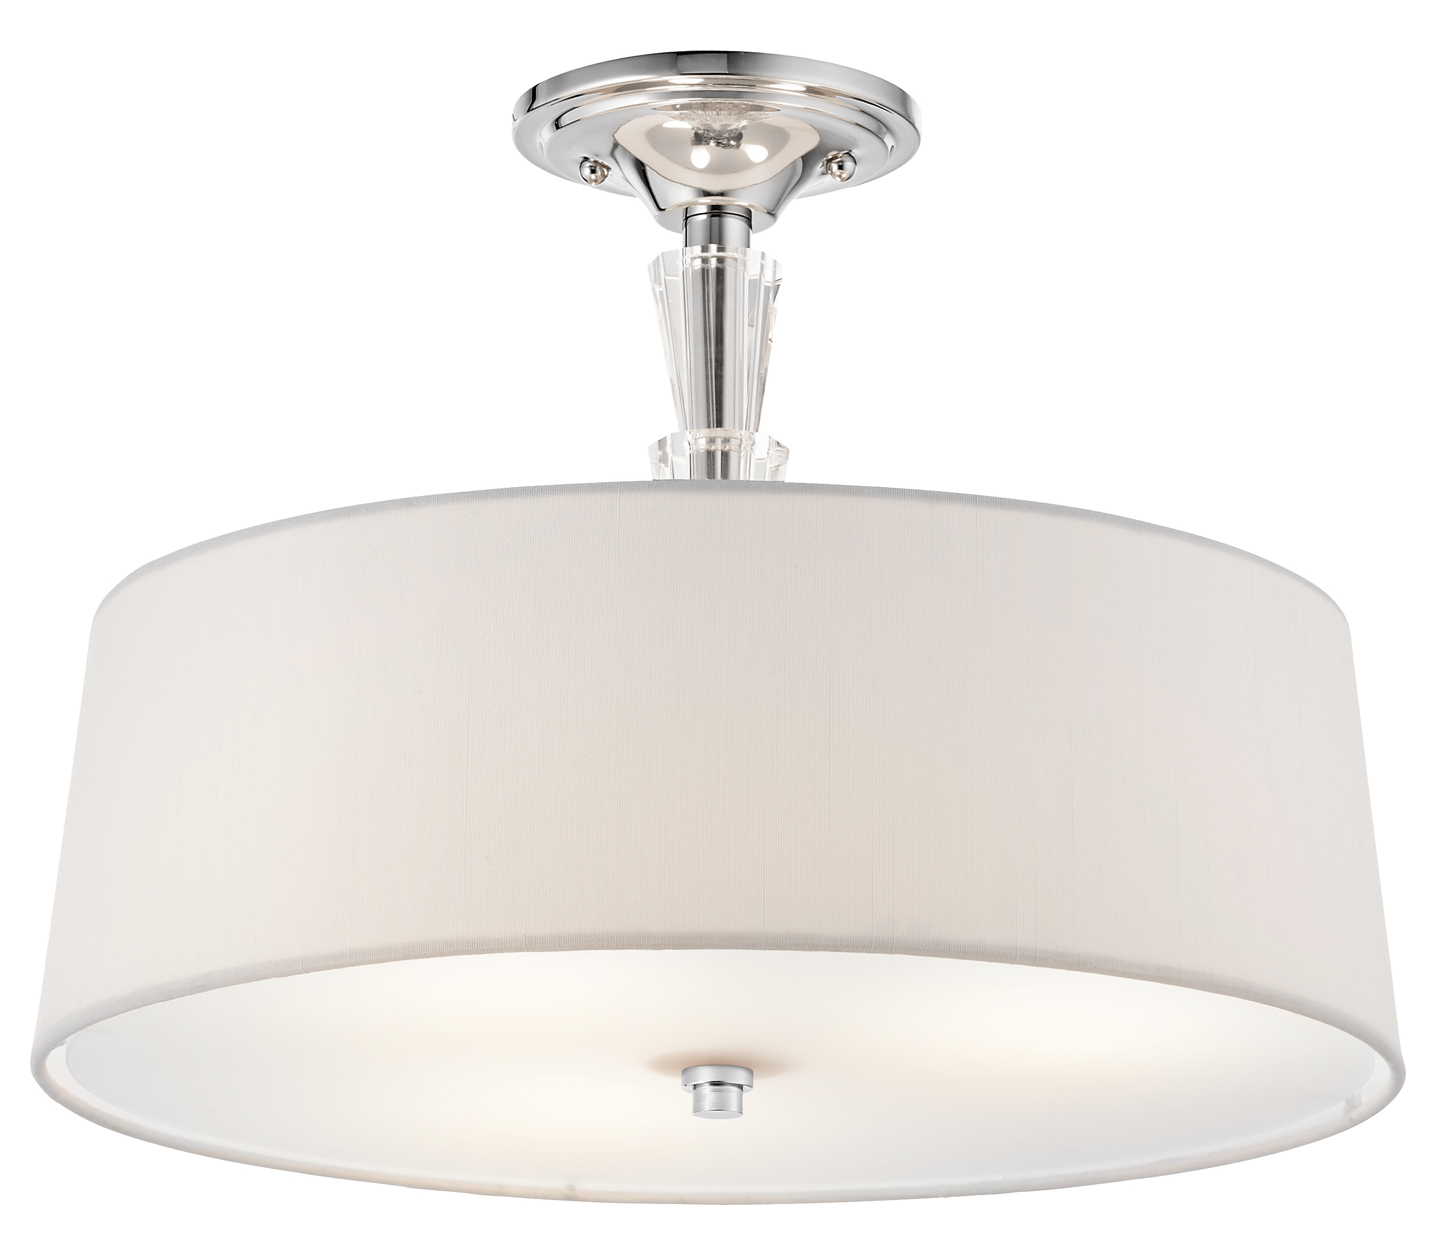 Kichler Open Box Chrome Crystal Persuasion 3 Light Semi Flush Indoor Ceiling Fixture 42035ch